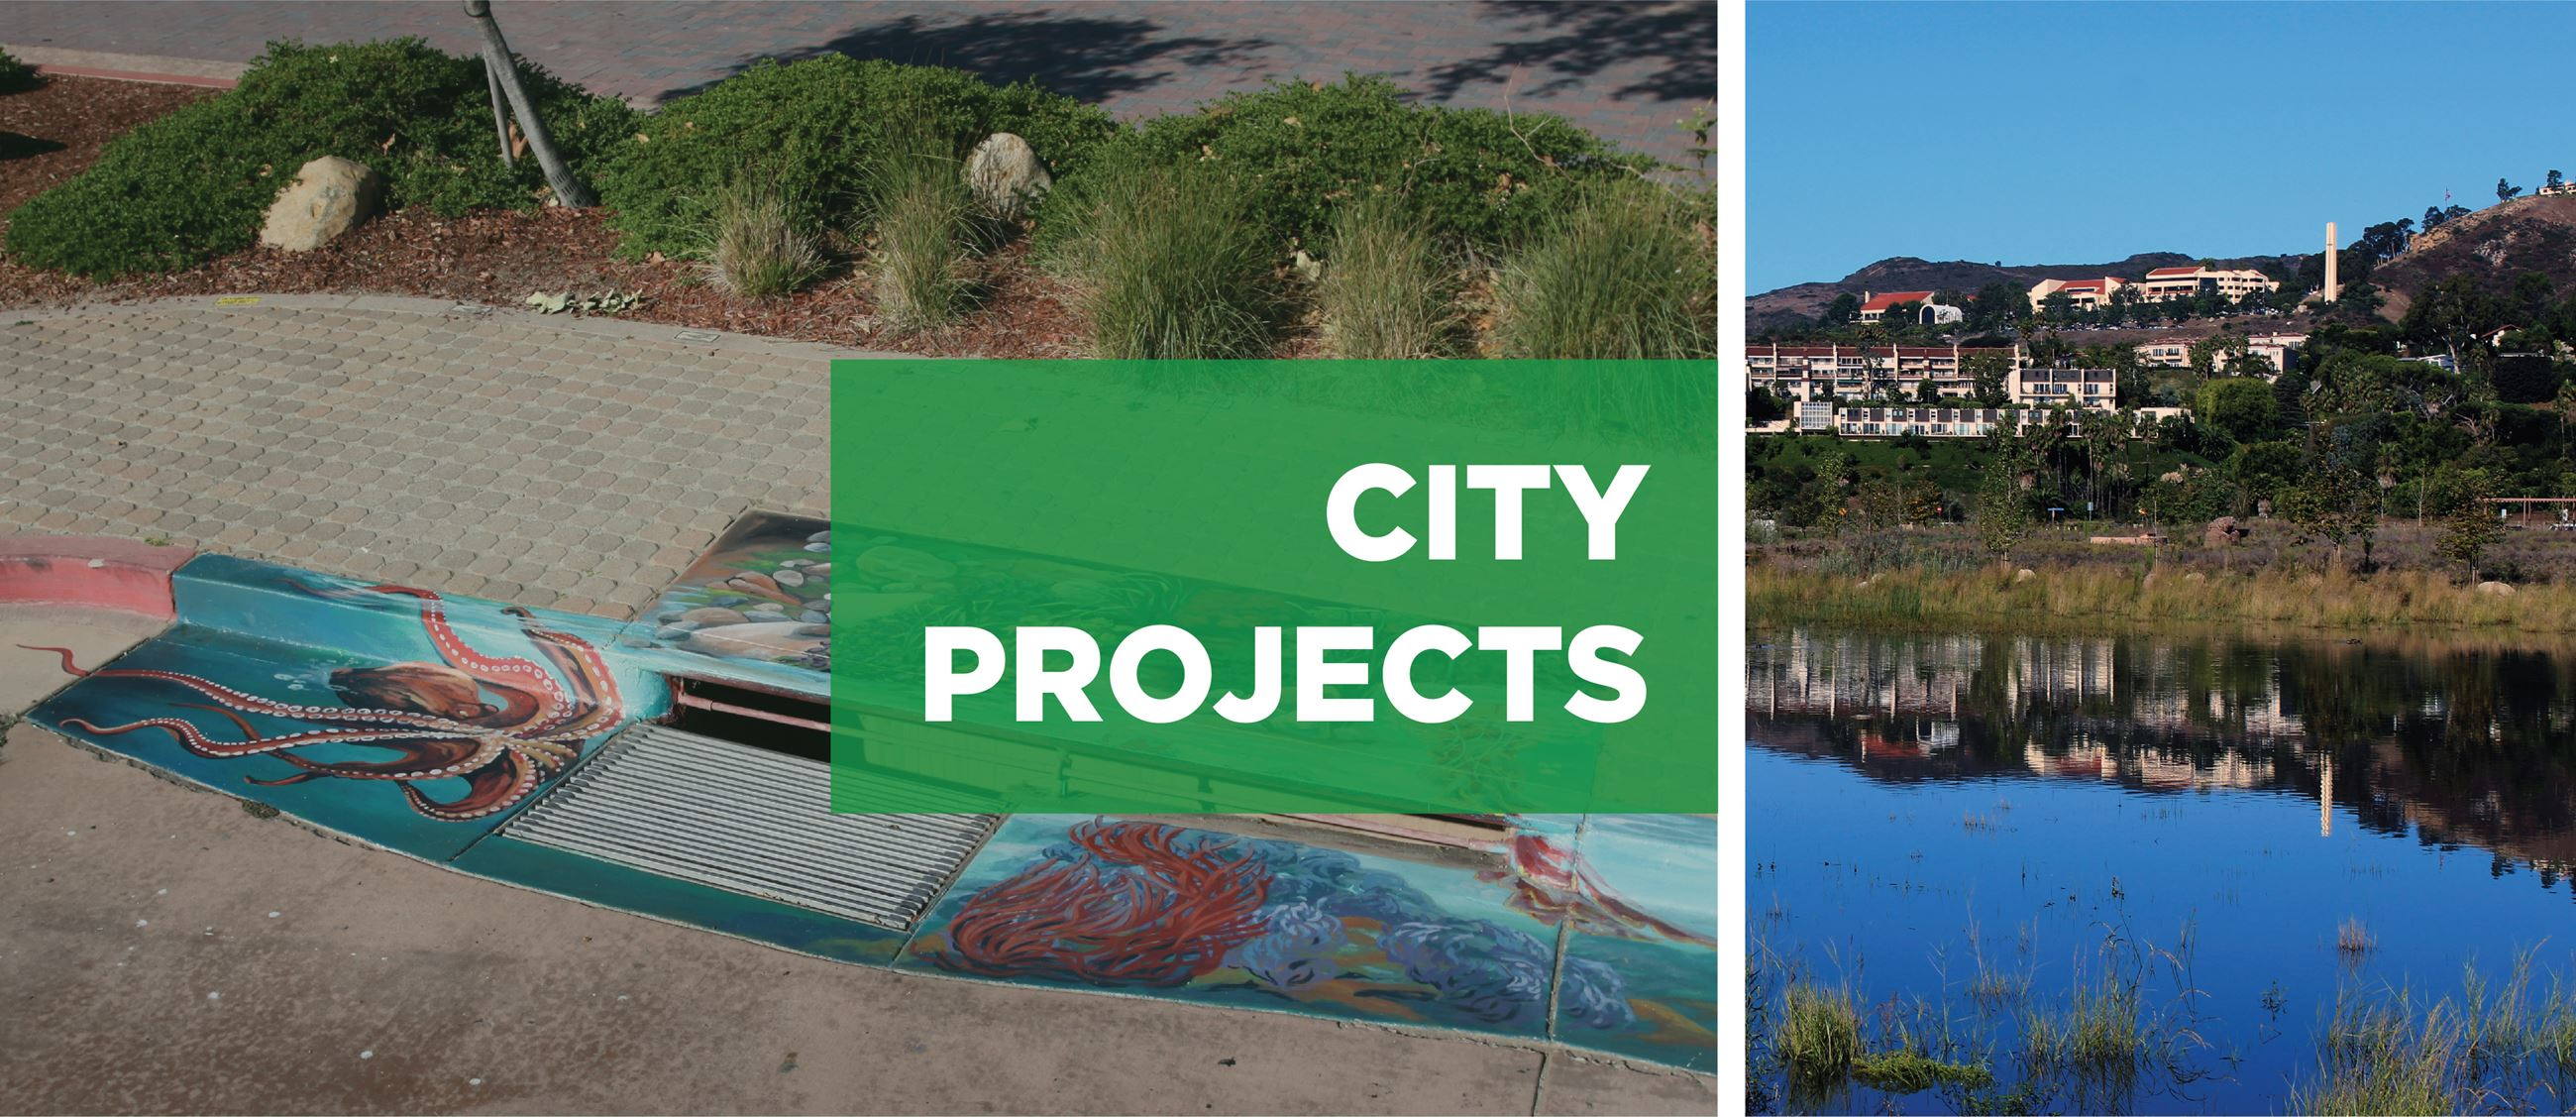 City Enviro Projects